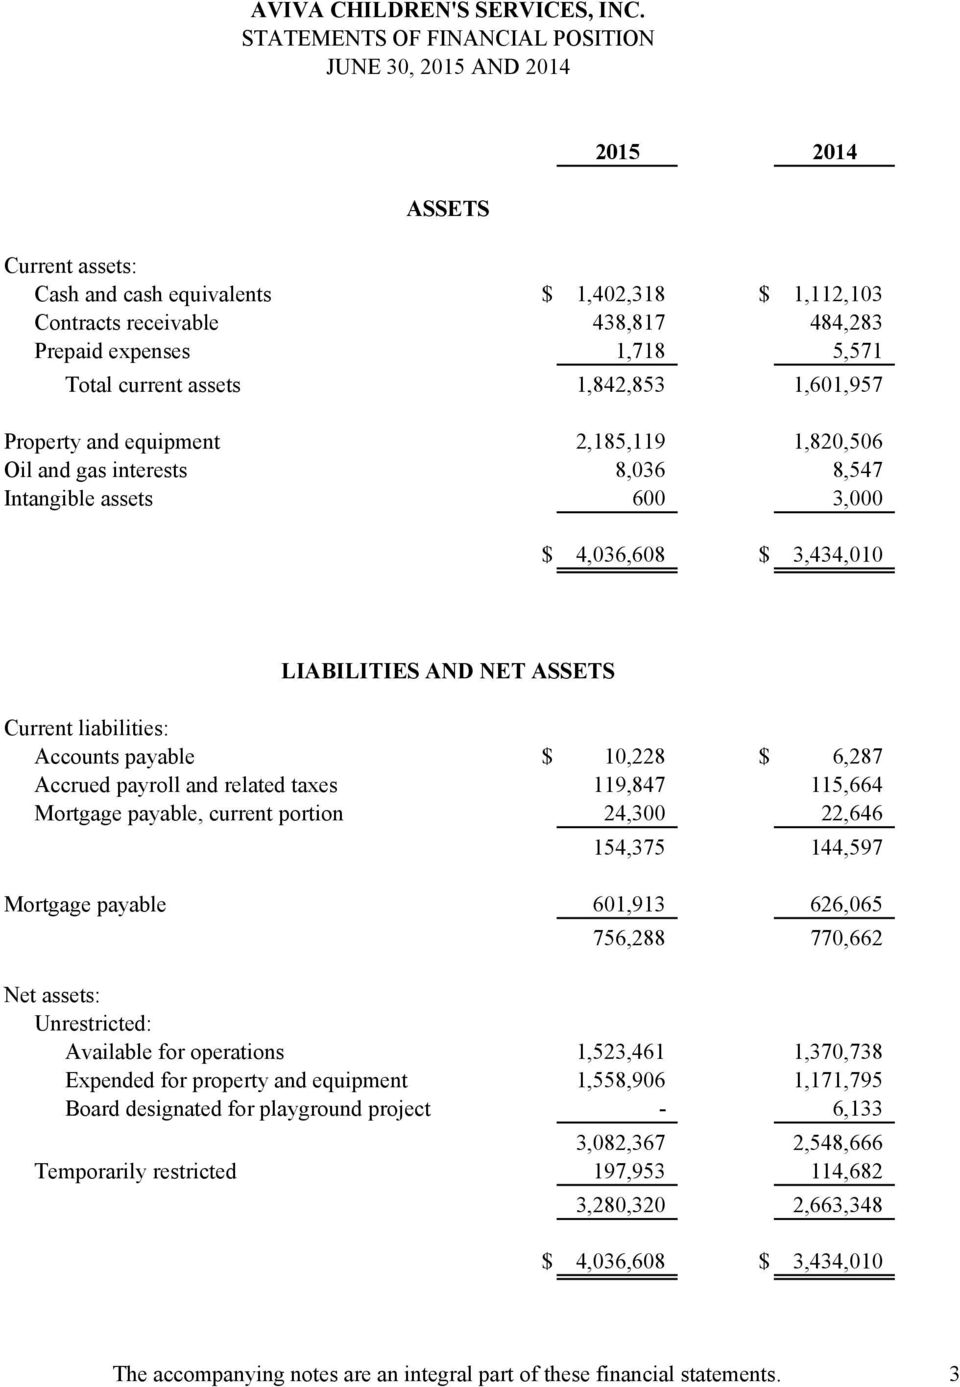 ASSETS Current liabilities: Accounts payable $ 10,228 $ 6,287 Accrued payroll and related taxes 119,847 115,664 Mortgage payable, current portion 24,300 22,646 154,375 144,597 Mortgage payable